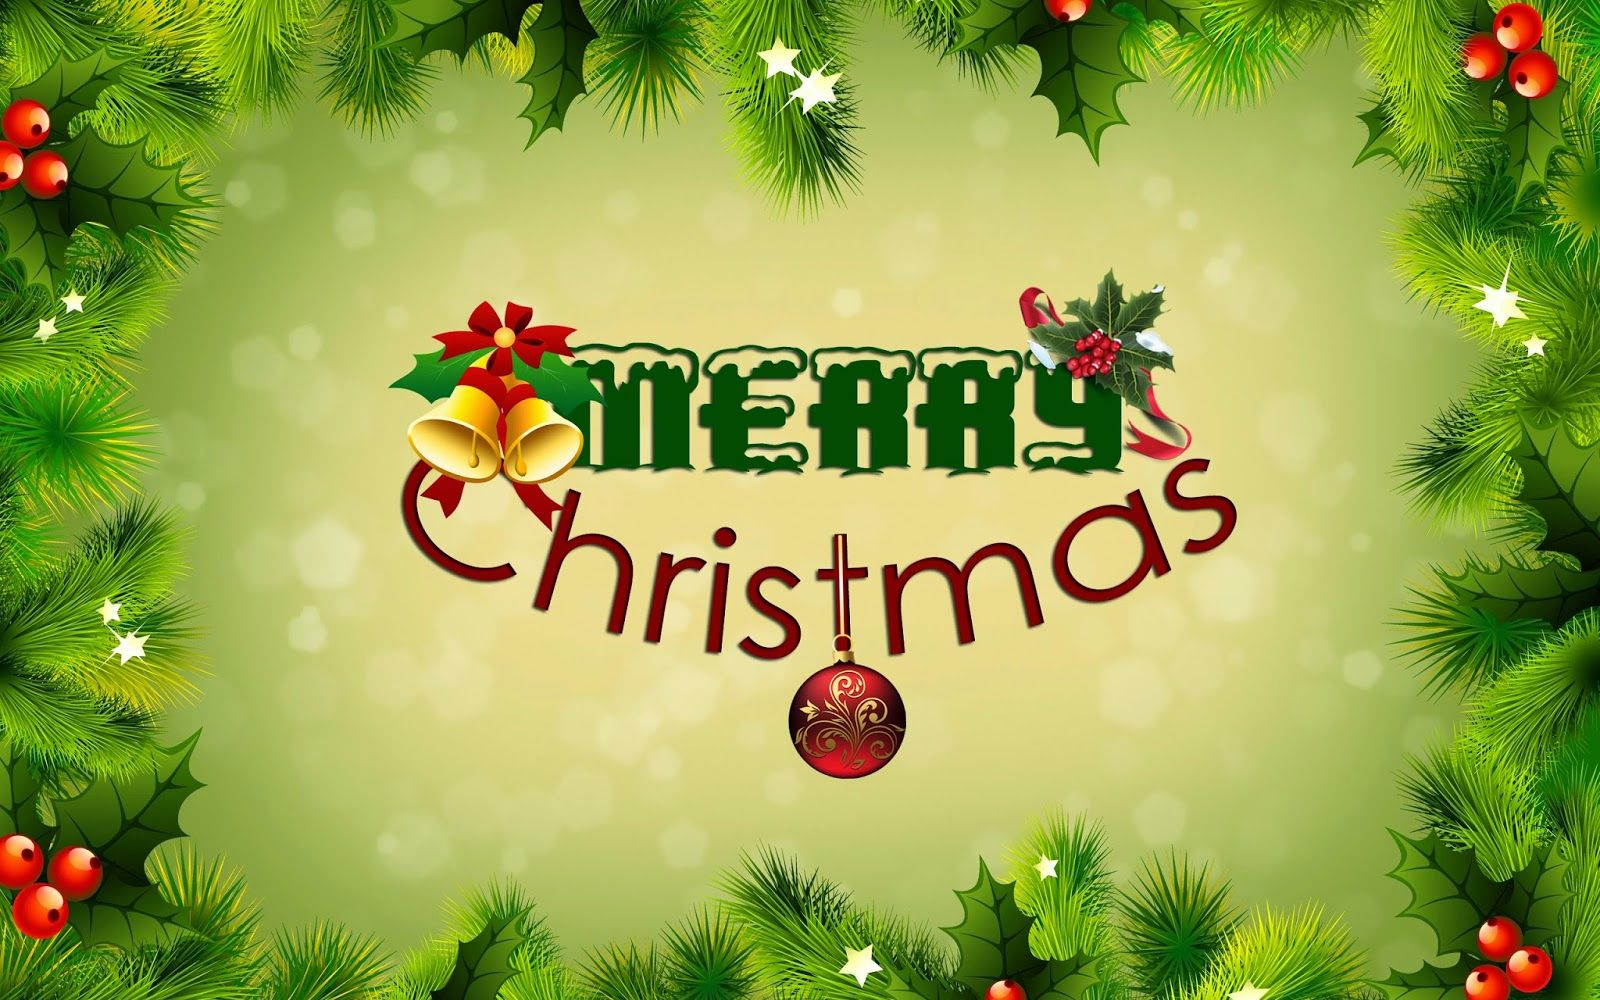 Happy Merry Christmas Images 1080p Hd Wallpapers Get The Latest Beautiful Christmas Happy Merry Christmas Merry Christmas Pictures Merry Christmas Wallpaper